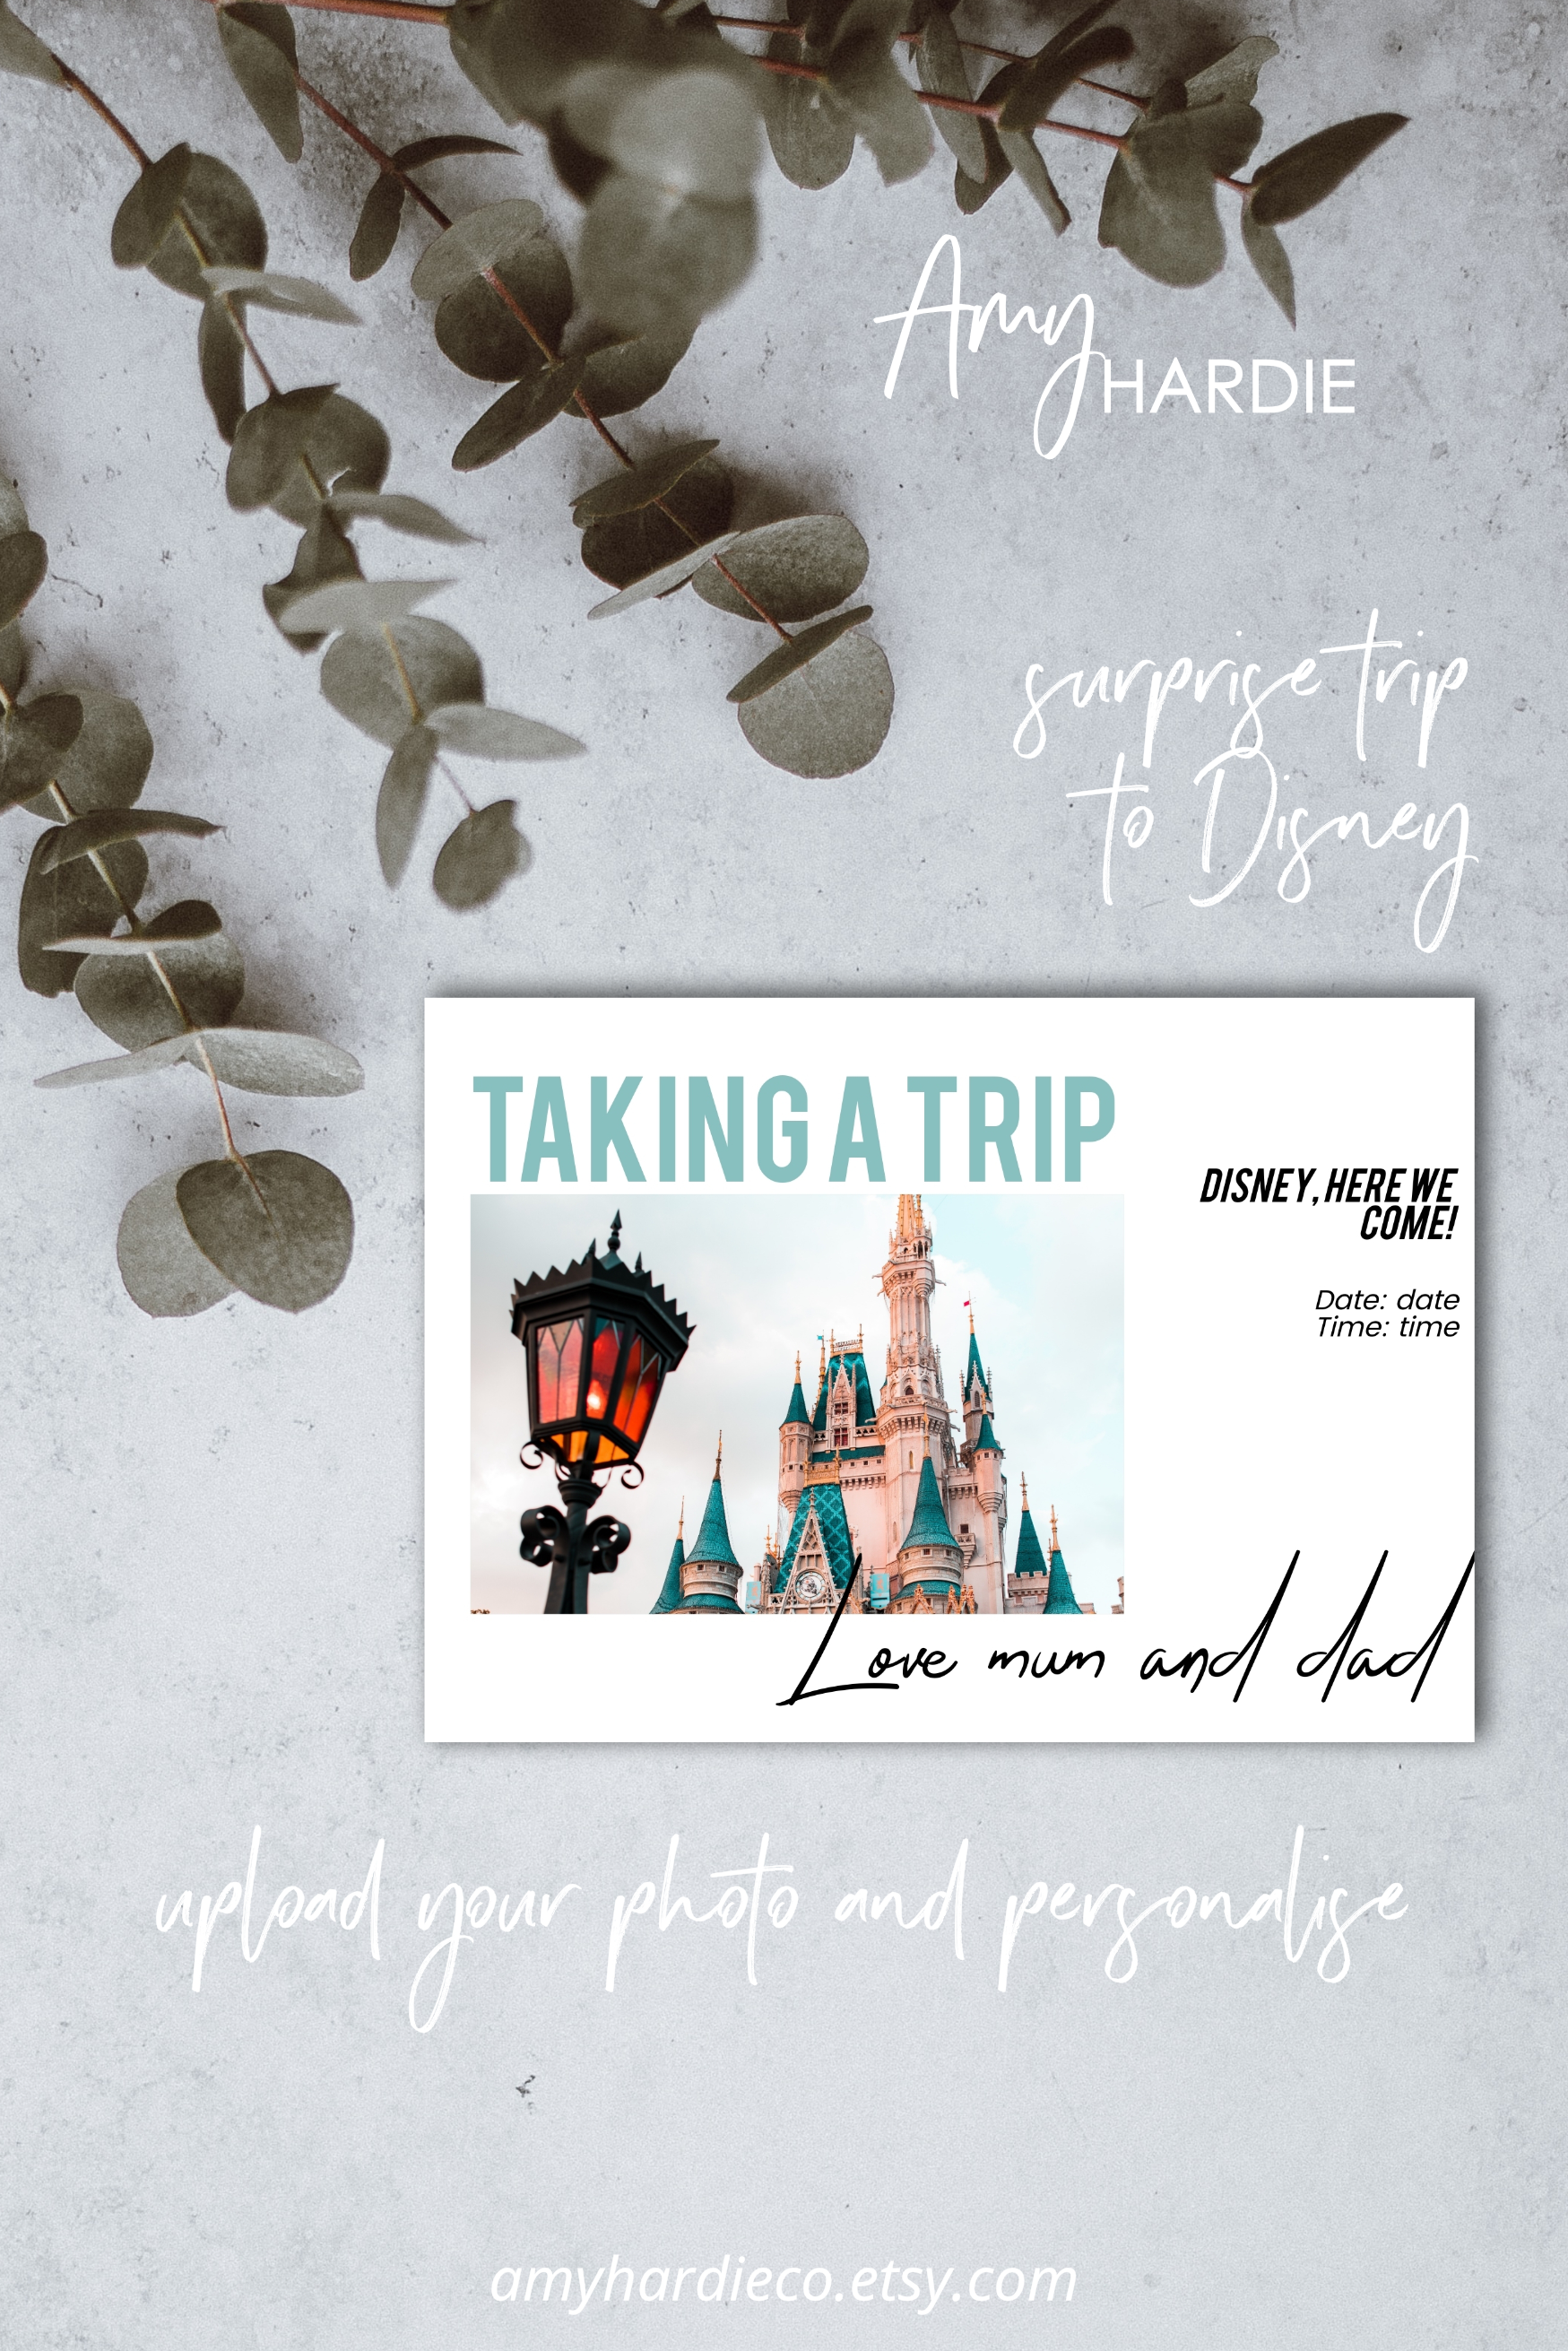 If You Are Planning A Surprise Trip To Disney This Card Is The Perfect Way To Gift The Surprise Upload Y Gift Card Template Digital Gift Card Gift Card Design